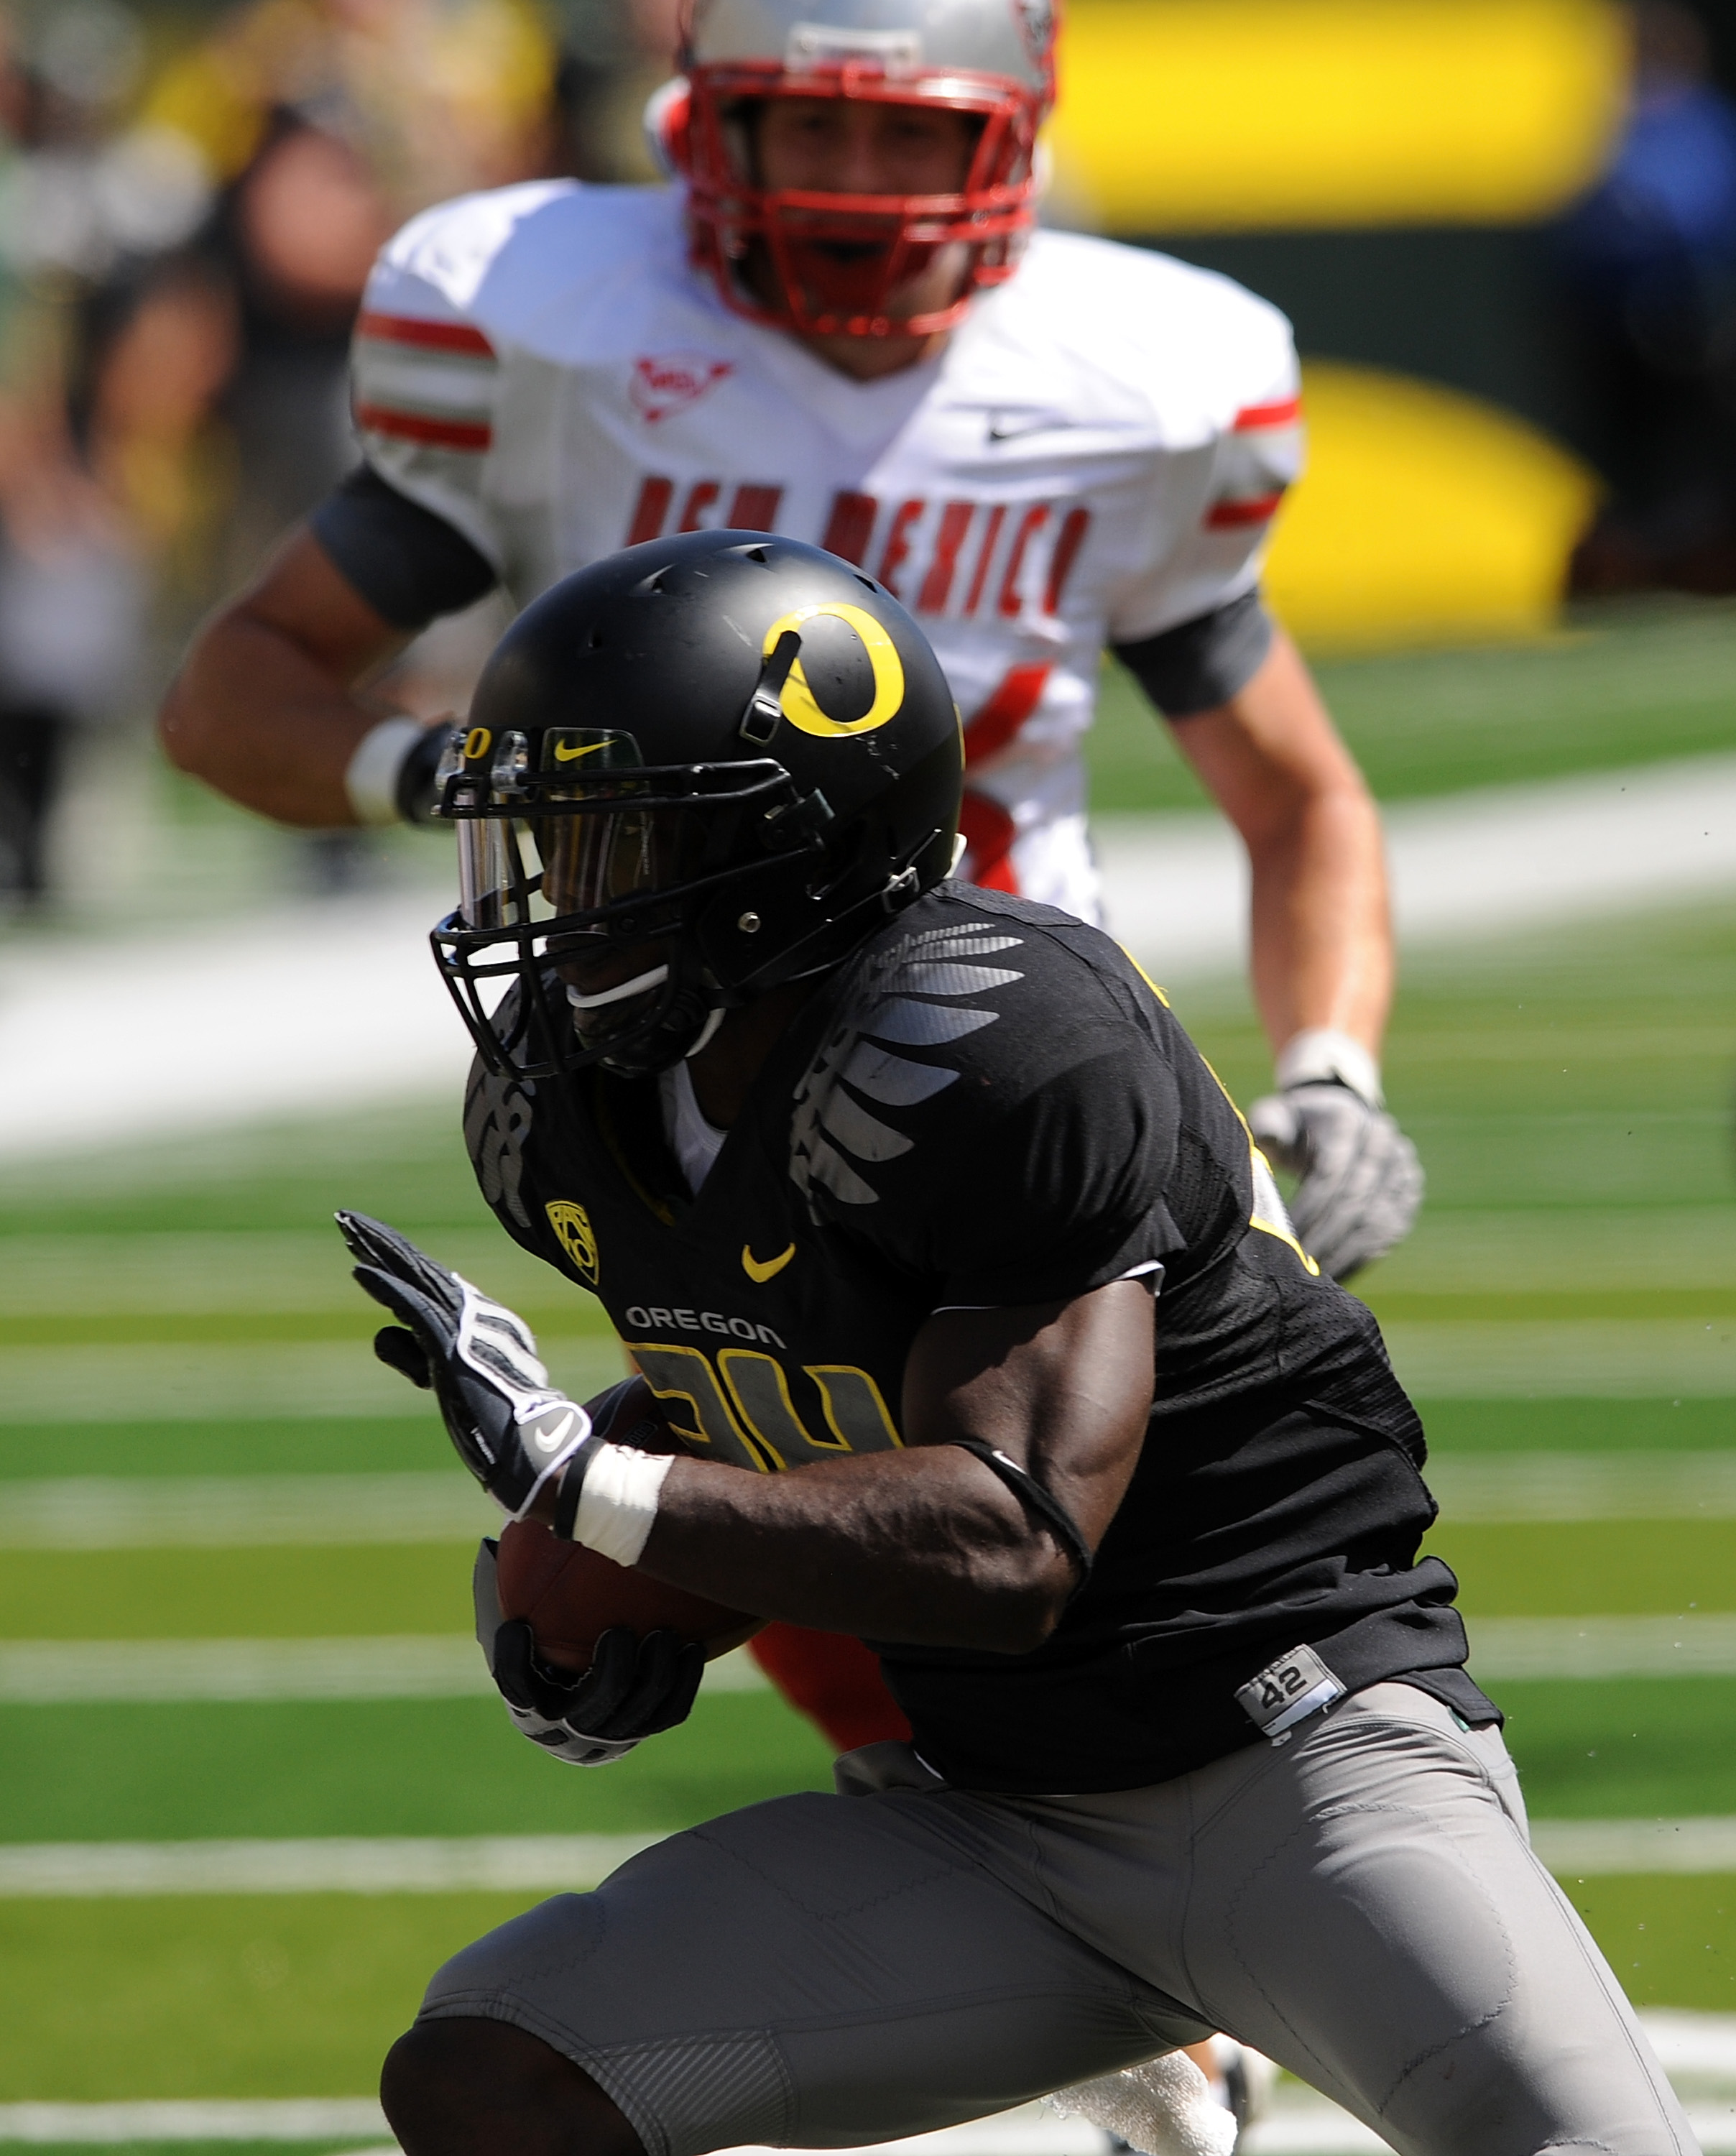 EUGENE, OR - SEPTEMBER 04: Running back Kenjon Barner #24 of the Oregon Ducks heads for the endzone and a touchdown in the first quarter of the game against the New Mexico Lobos at Autzen Stadium on September 4, 2010 in Eugene, Oregon. Barner had 225 tota